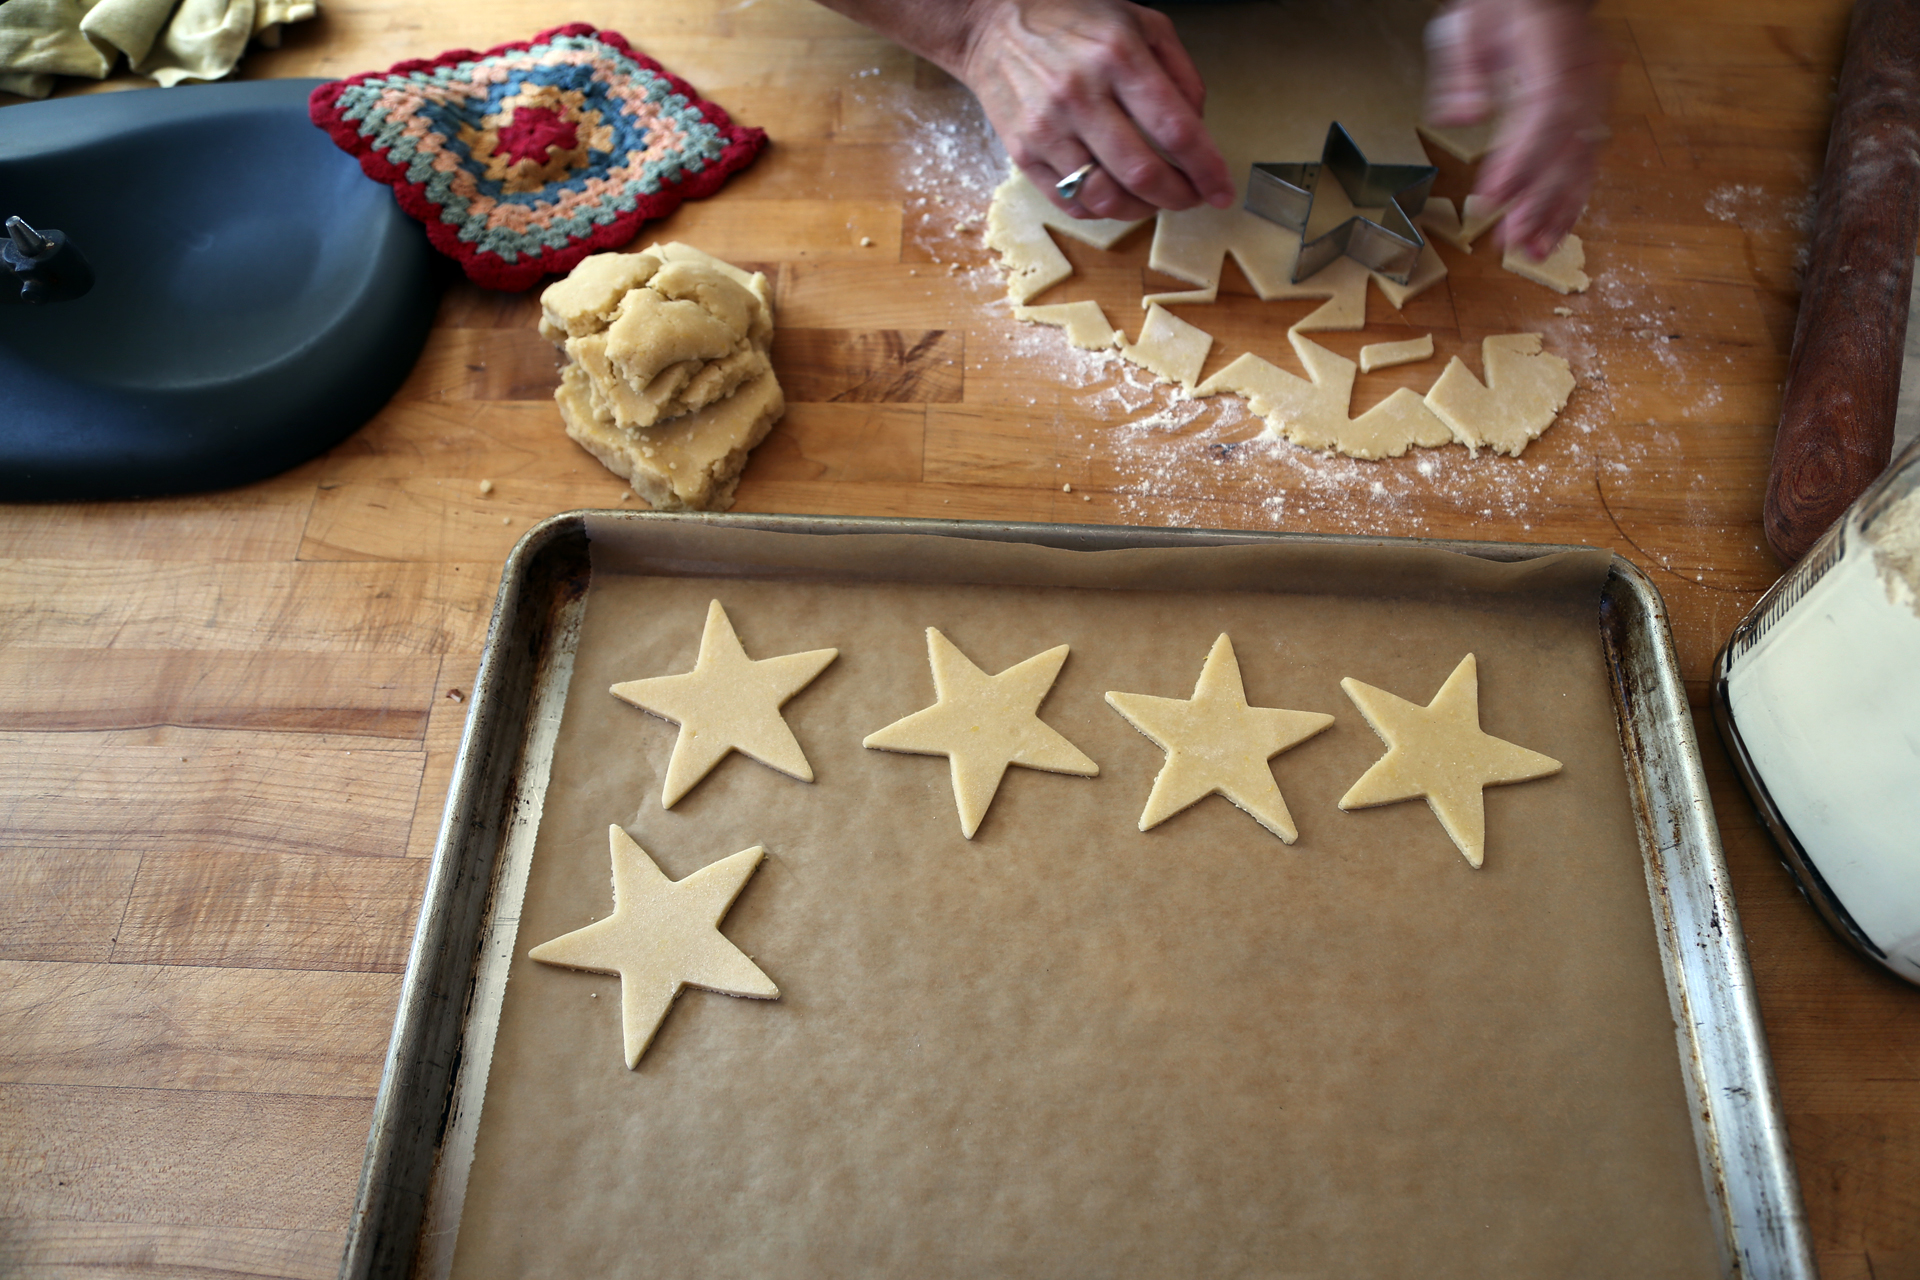 Using a 3 1/2-inch star-shaped cookie cutters (or the cutters of your choice), cut out as many rounds as possible, spacing them slightly apart.